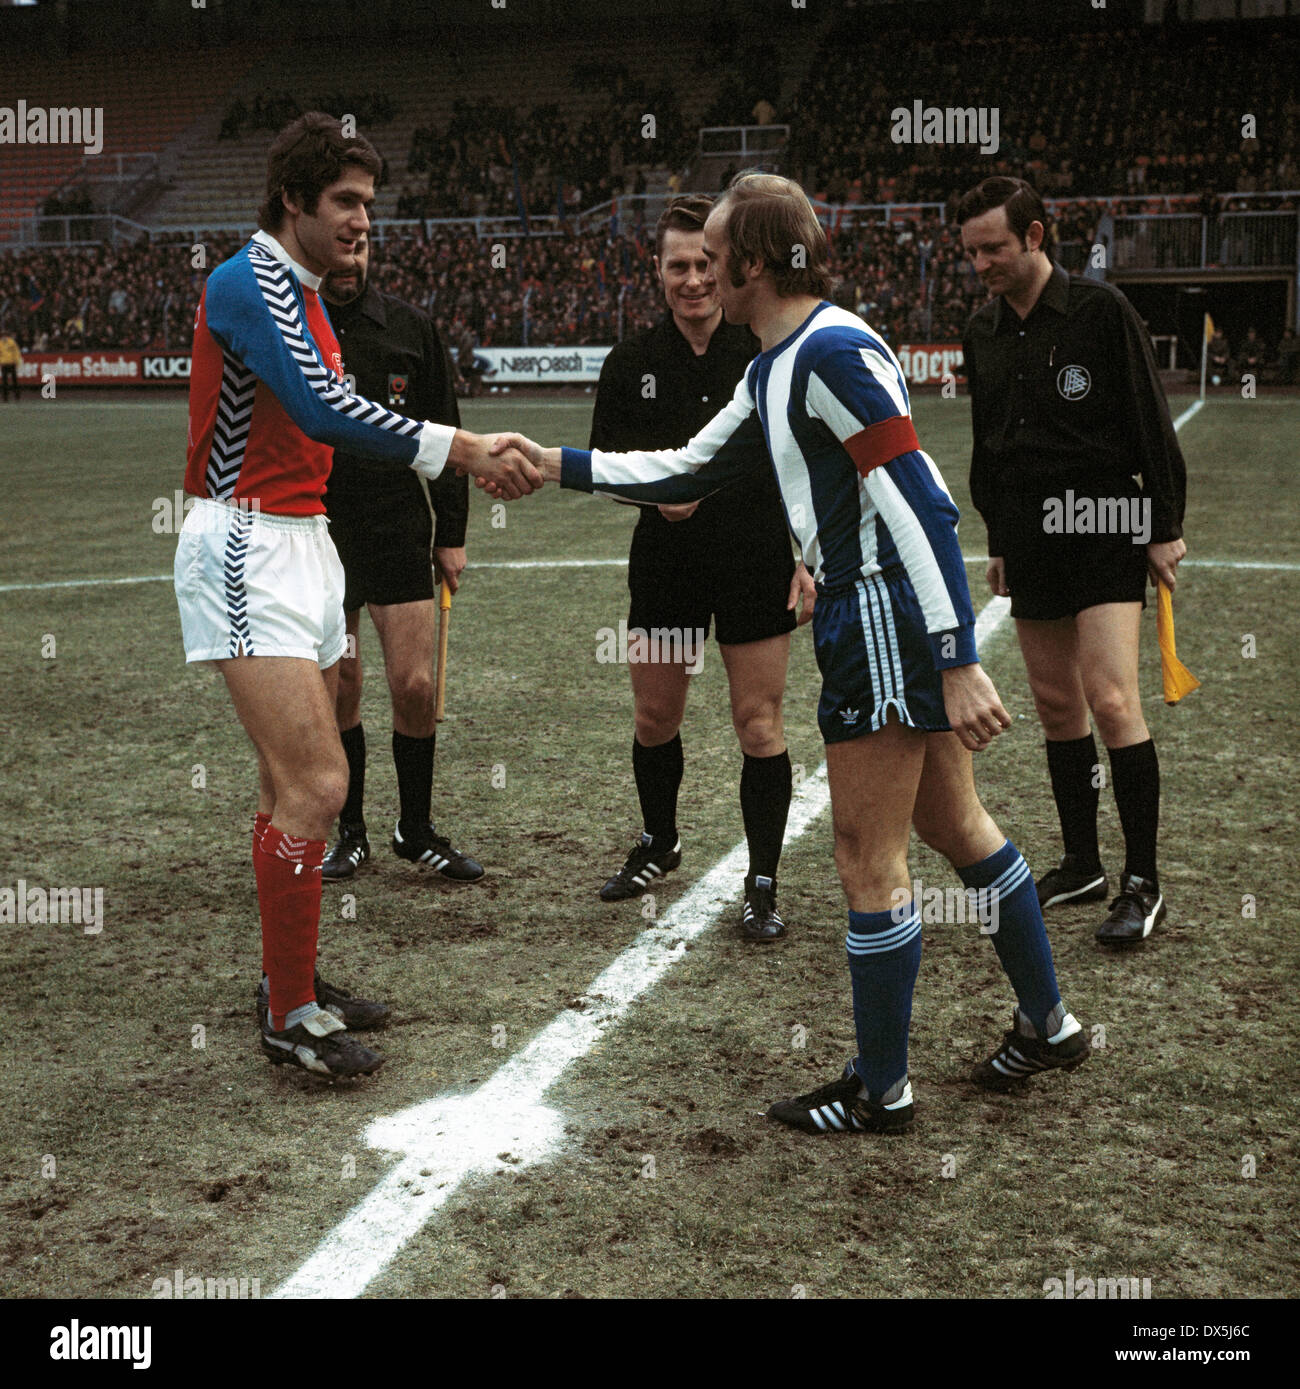 football, Bundesliga, 1975/1976, Grotenburg Stadium, FC Bayer 05 Uerdingen versus Hertha BSC Berlin 1:1, welcome, team leaders Paul Hahn (05) left and Erich Beer (Hertha), behind referee Guenter Linn and assistants - Stock Image